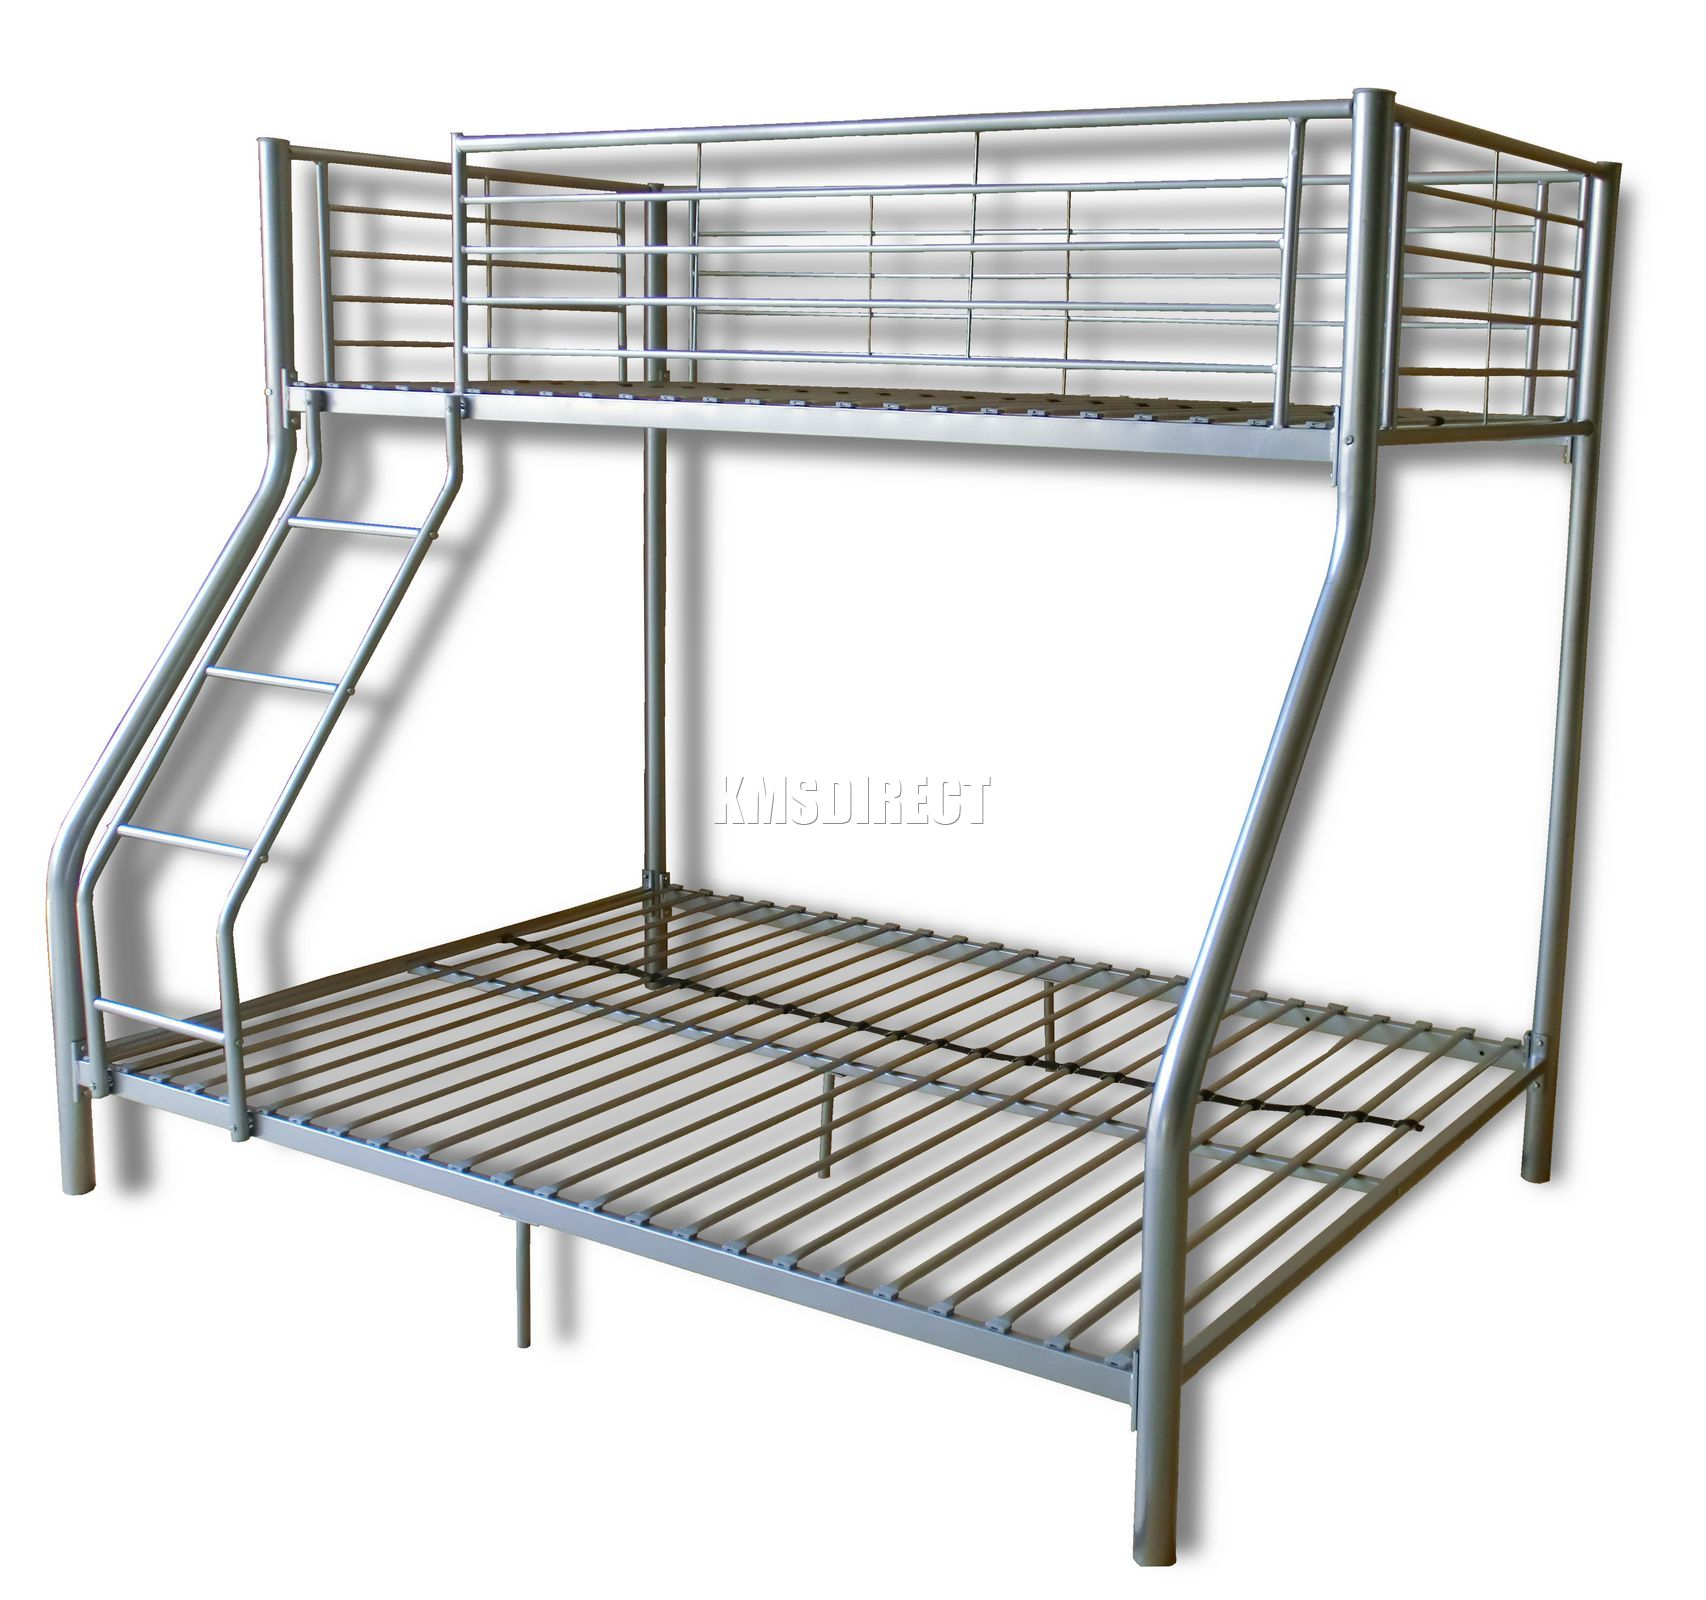 New silver metal triple children sleeper bunk bed frame no for Bunk bed frame with mattress